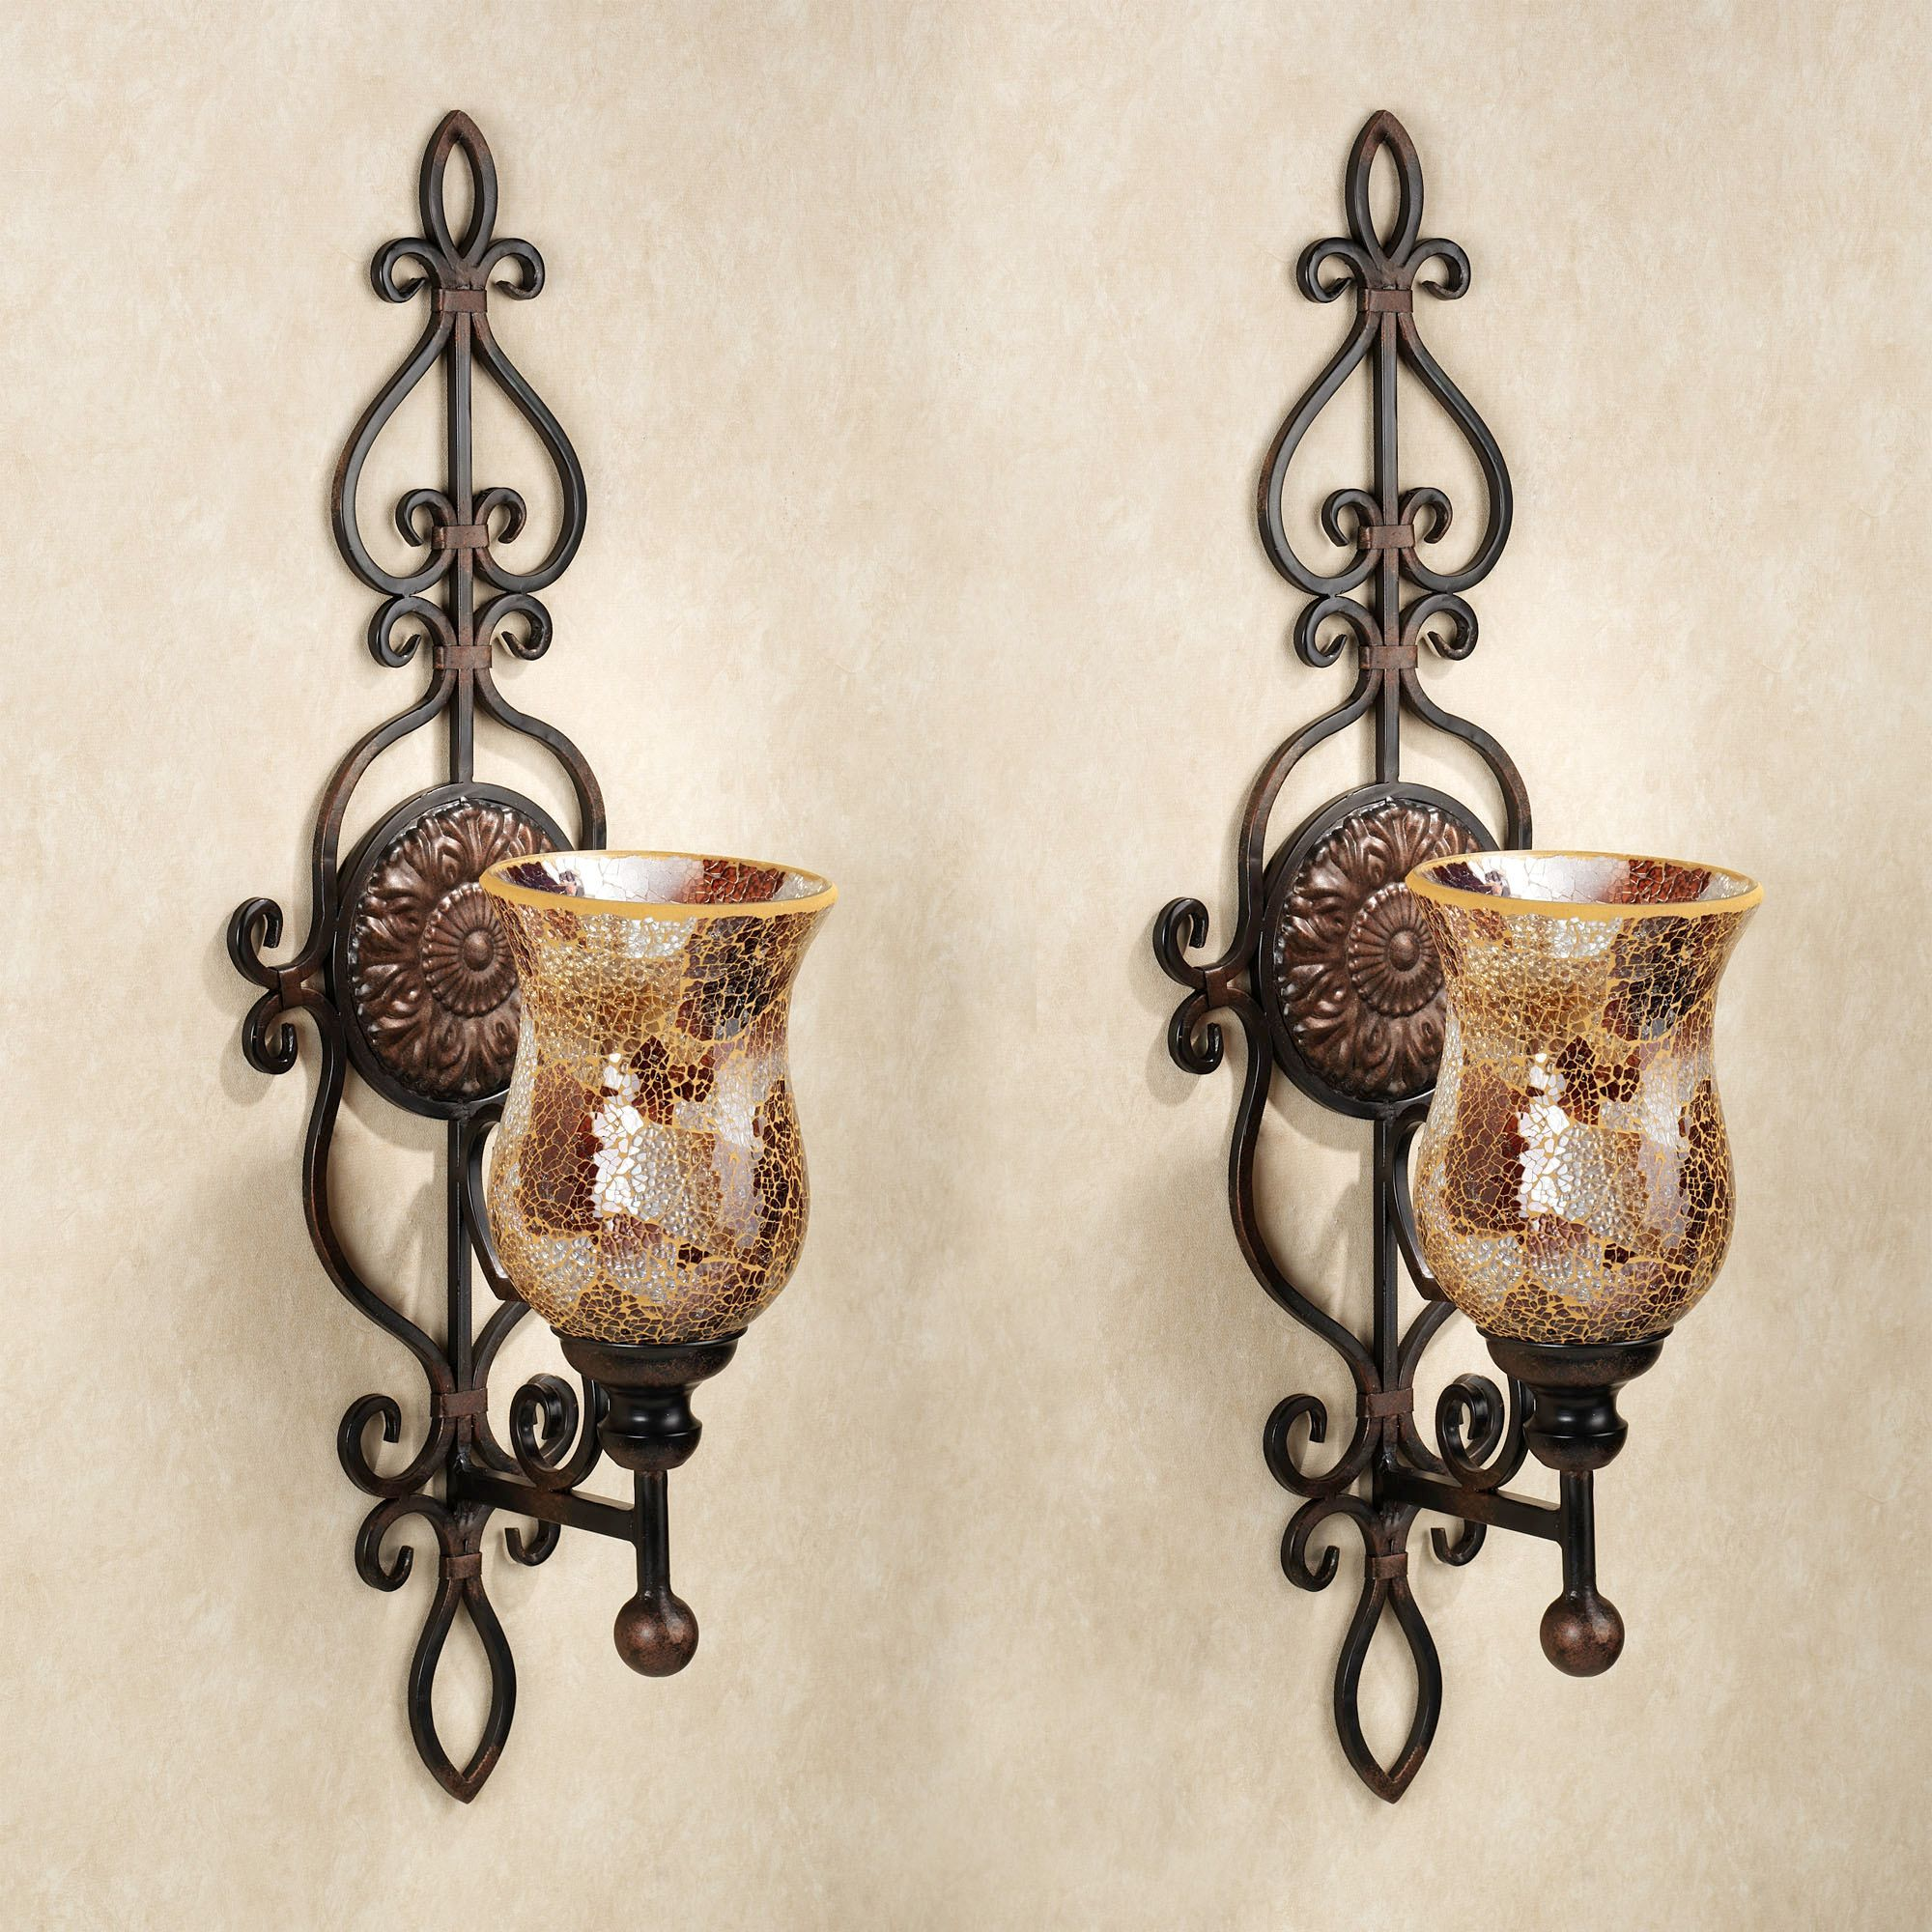 Leyanna Mosaic Wall Sconce Candle Wall Decor Candle Holder Wall